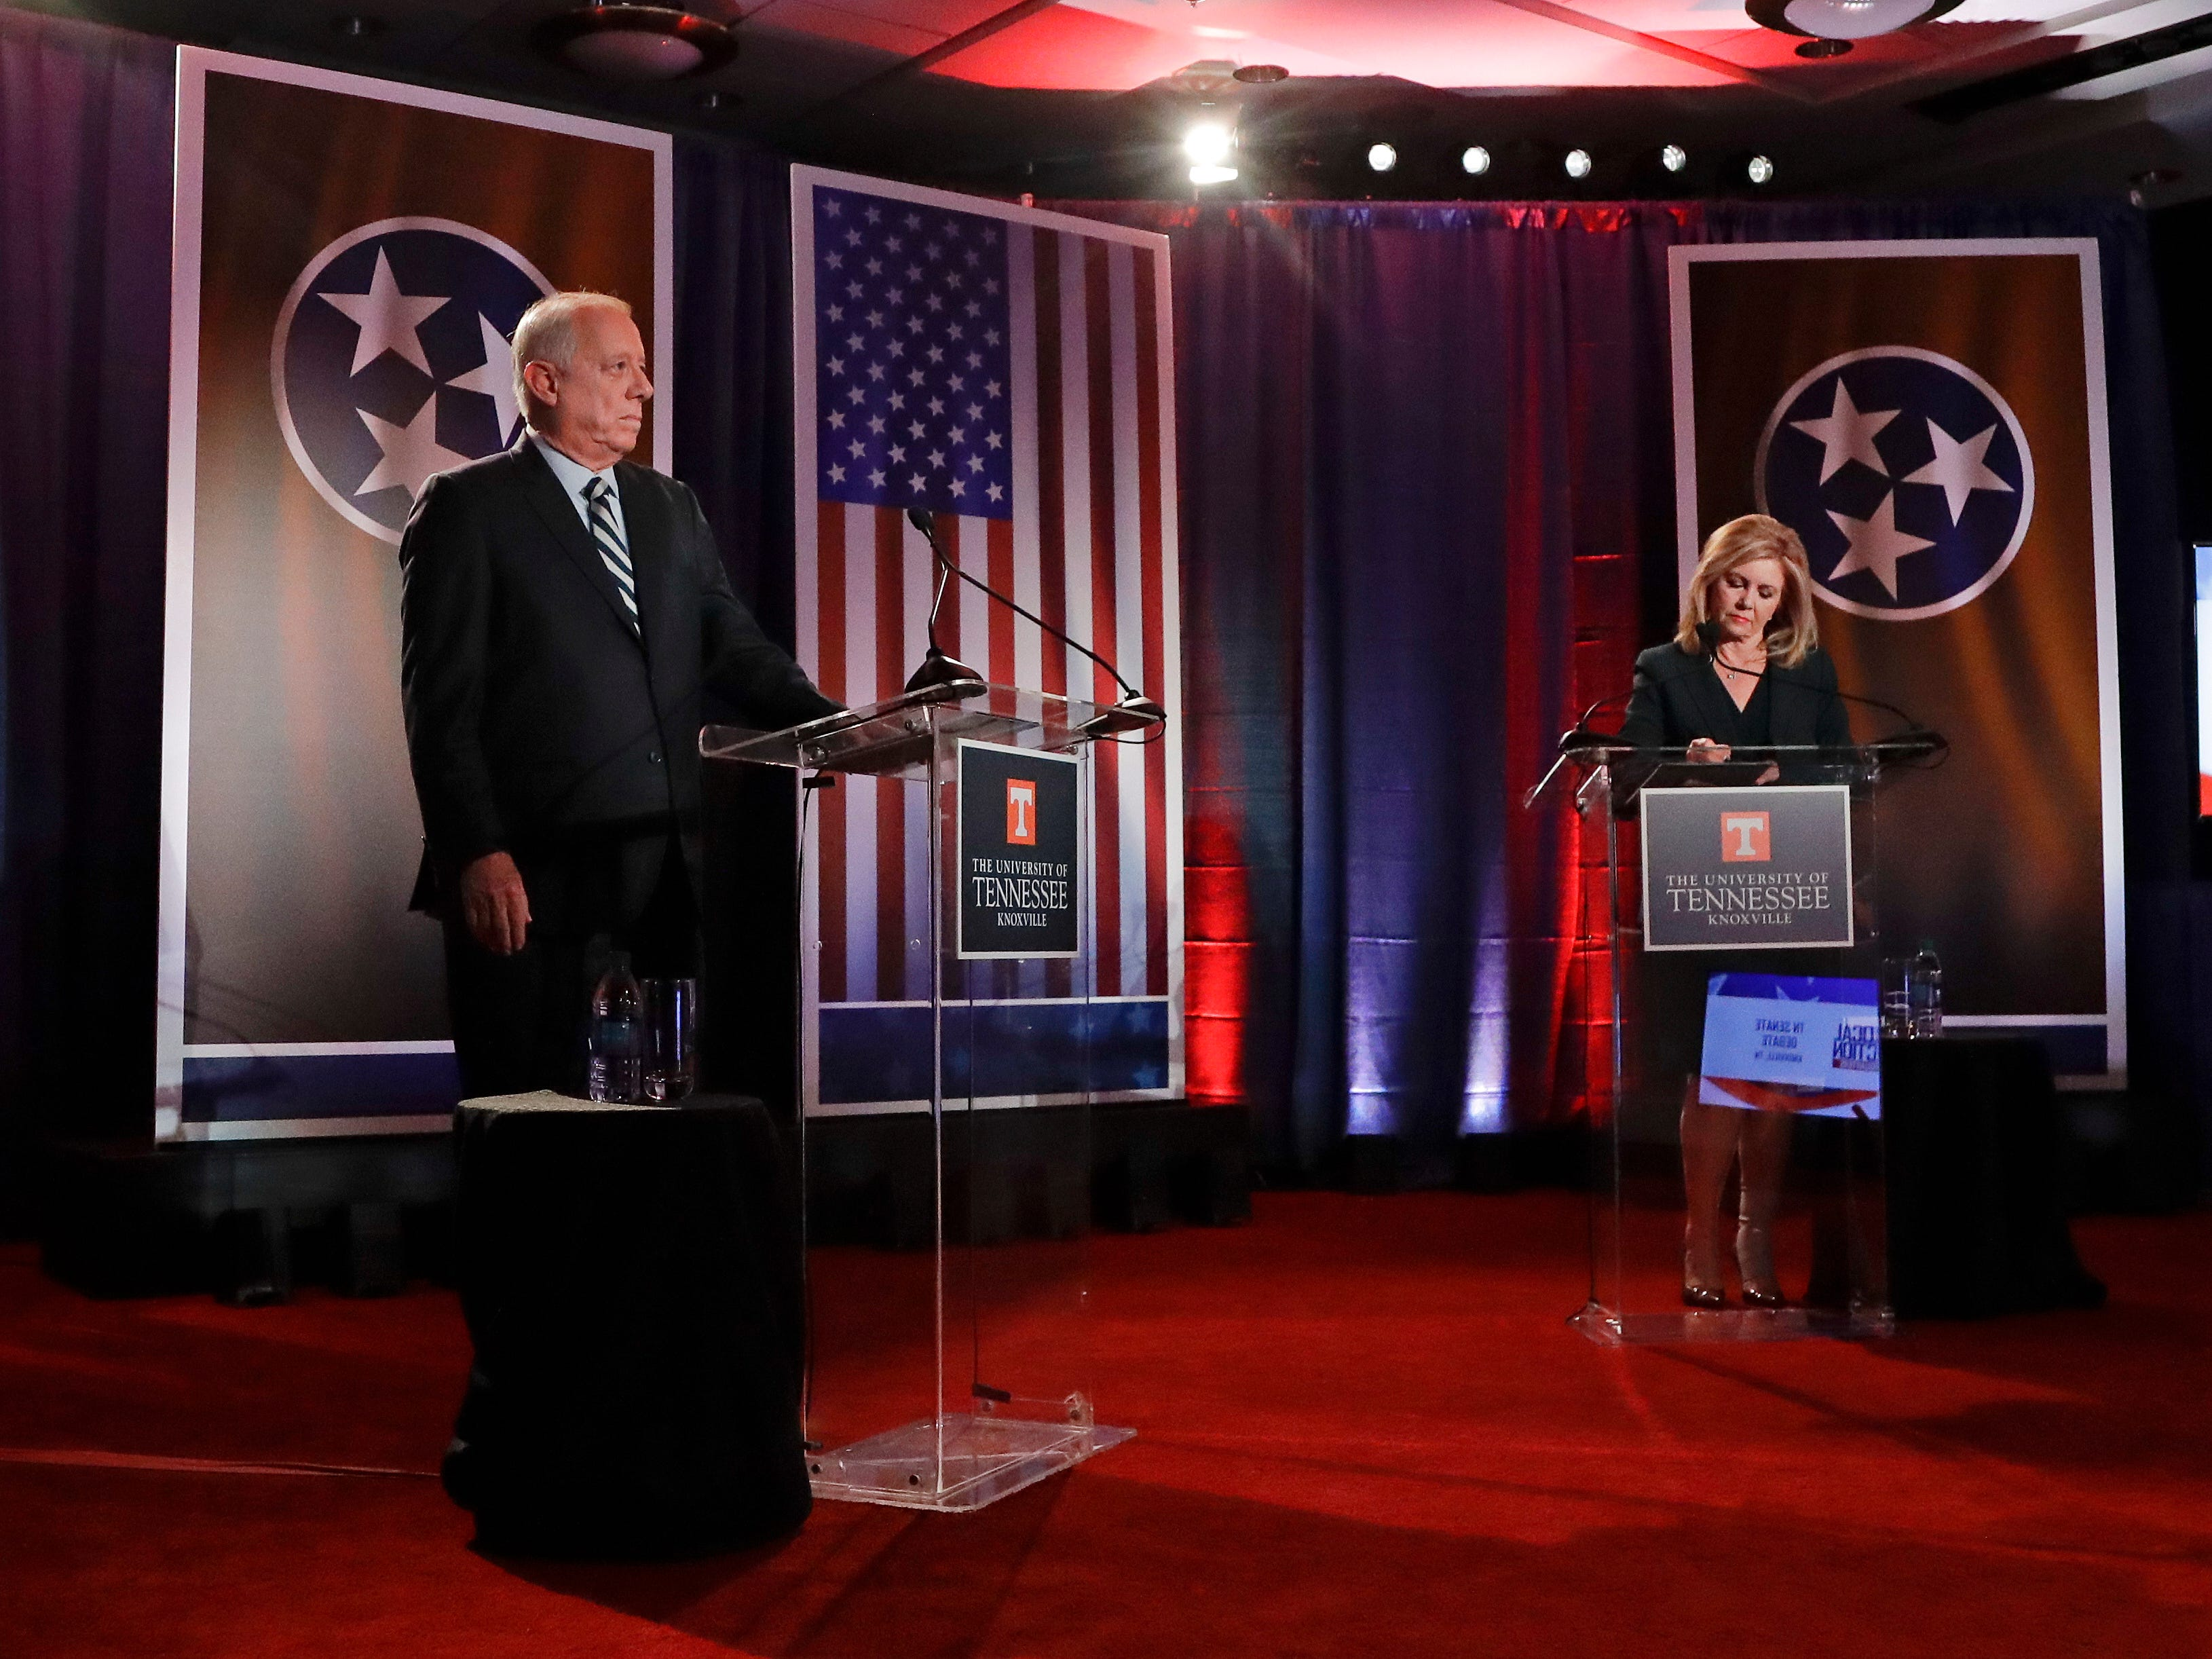 Democratic candidate and former Gov. Phil Bredesen, left, and Republican U.S. Rep. Marsha Blackburn wait for the start of the Tennessee U.S. Senate debate at The University of Tennessee, Wednesday, Oct. 10, 2018, in Knoxville, Tenn.